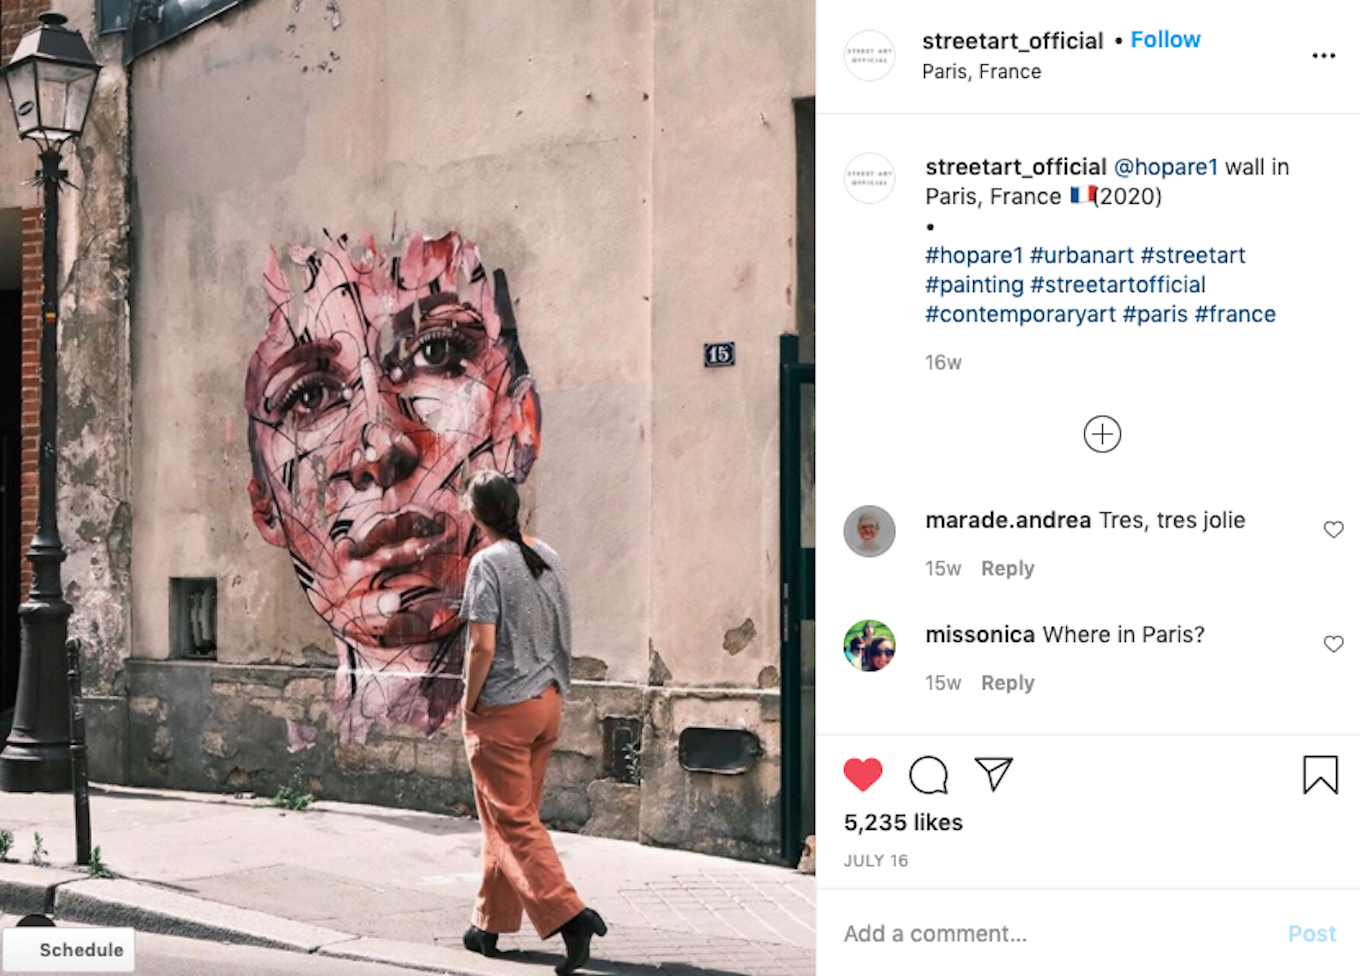 An Instagram screenshot featuring a mural of a woman's face. Another woman is walking by looking at the mural.